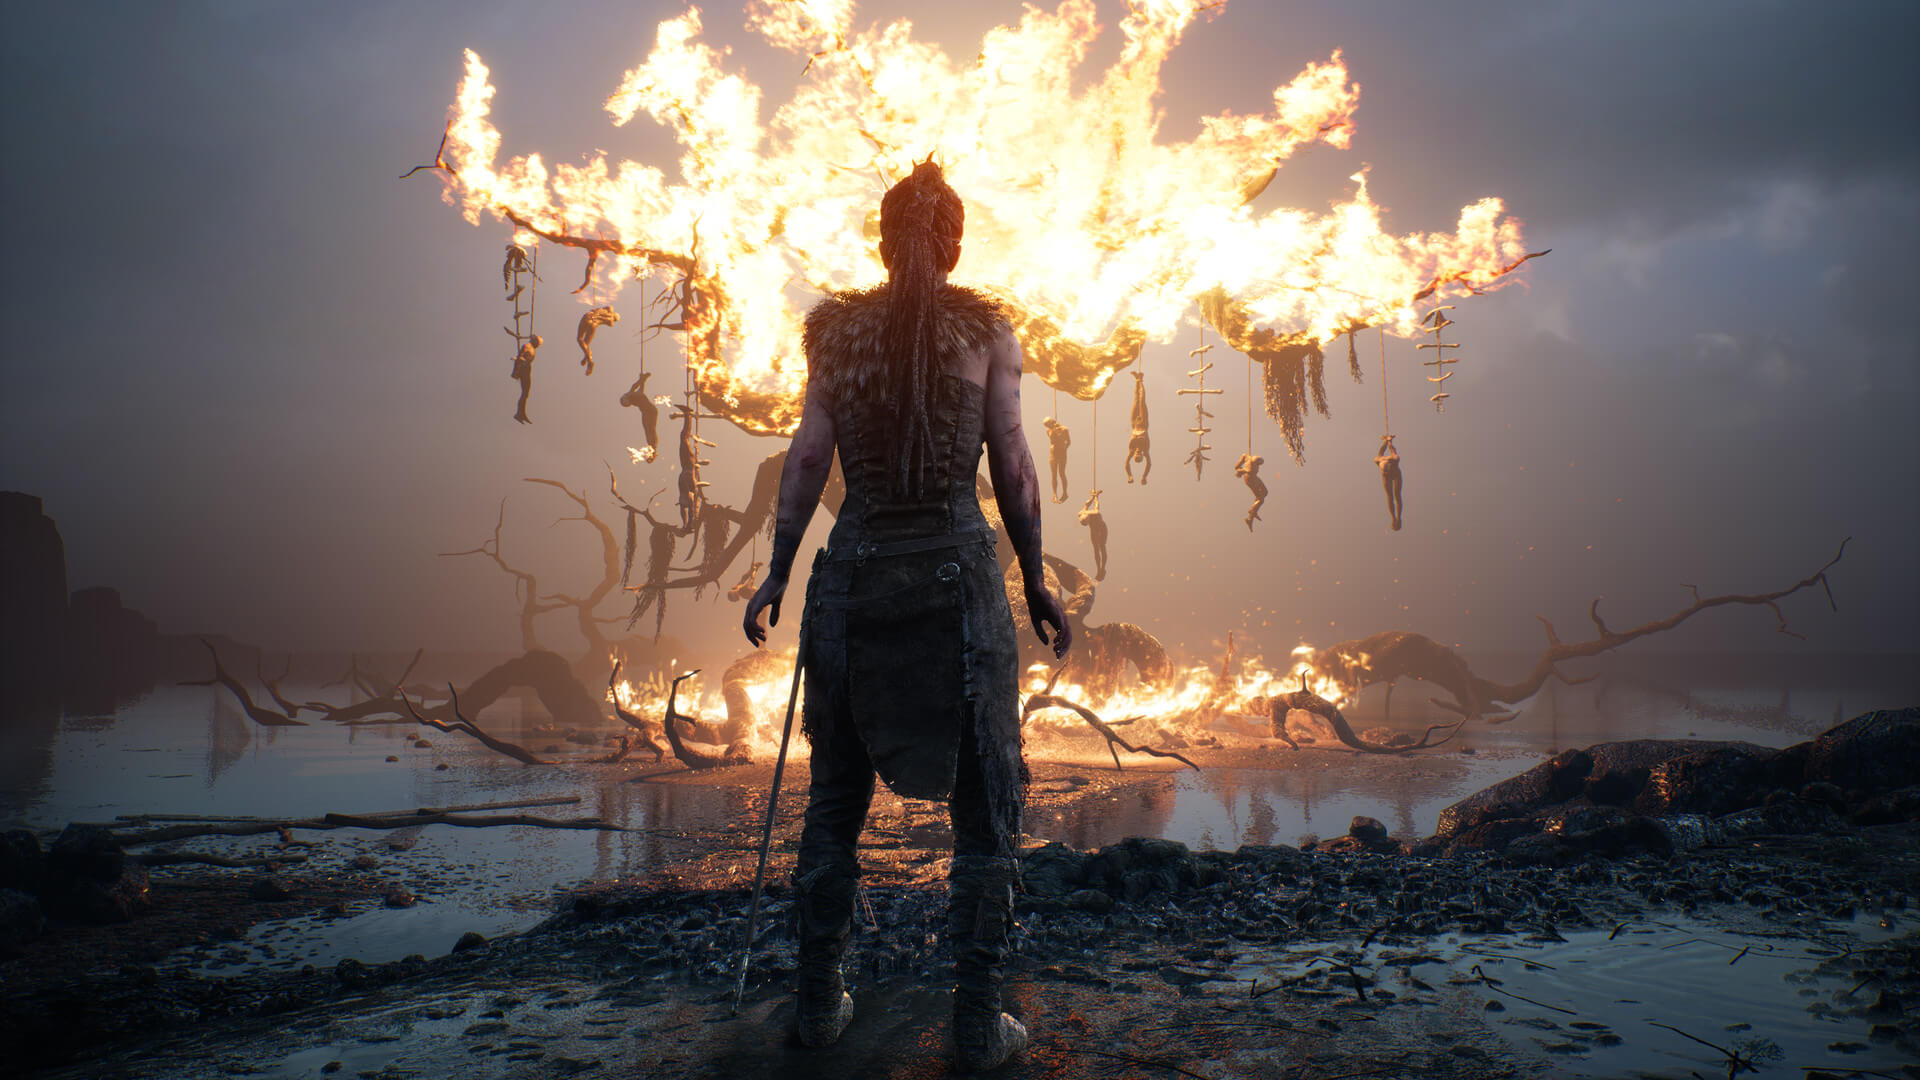 Prepare to be Traumatized as Hellblade: Senua's Sacrifice Get's a VR Edition